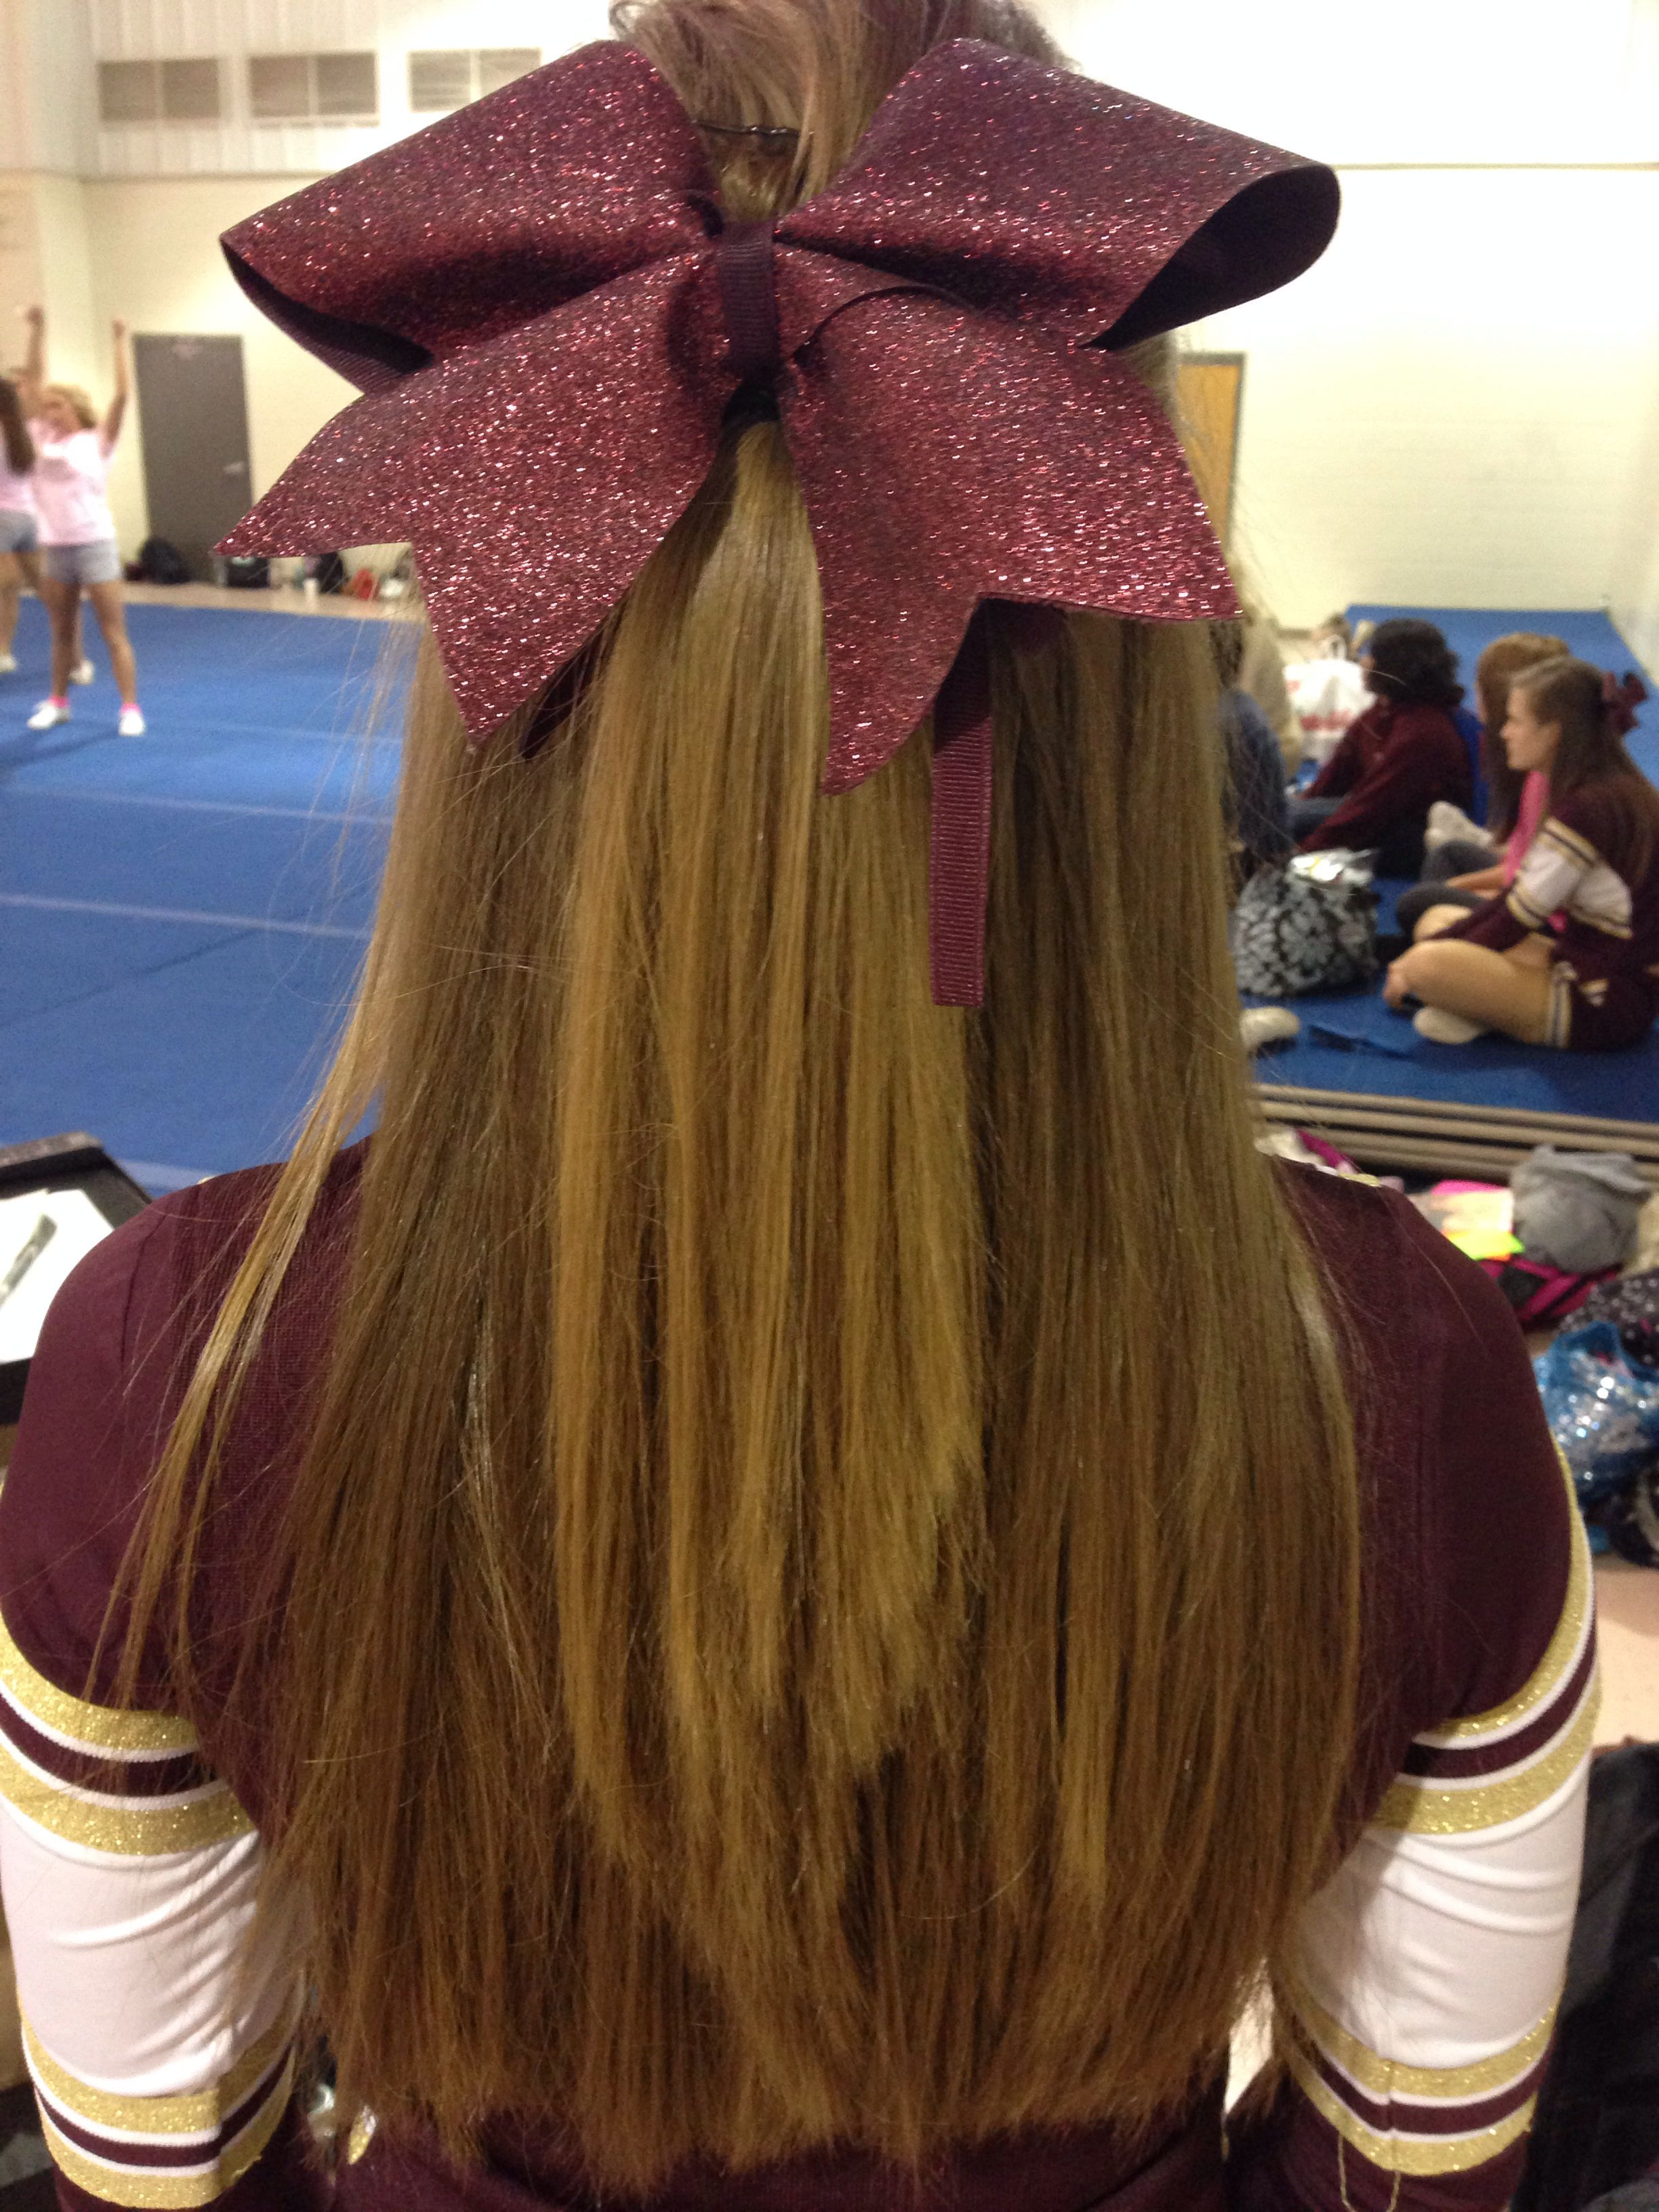 perfect cheer hair for non-humid football games! straight